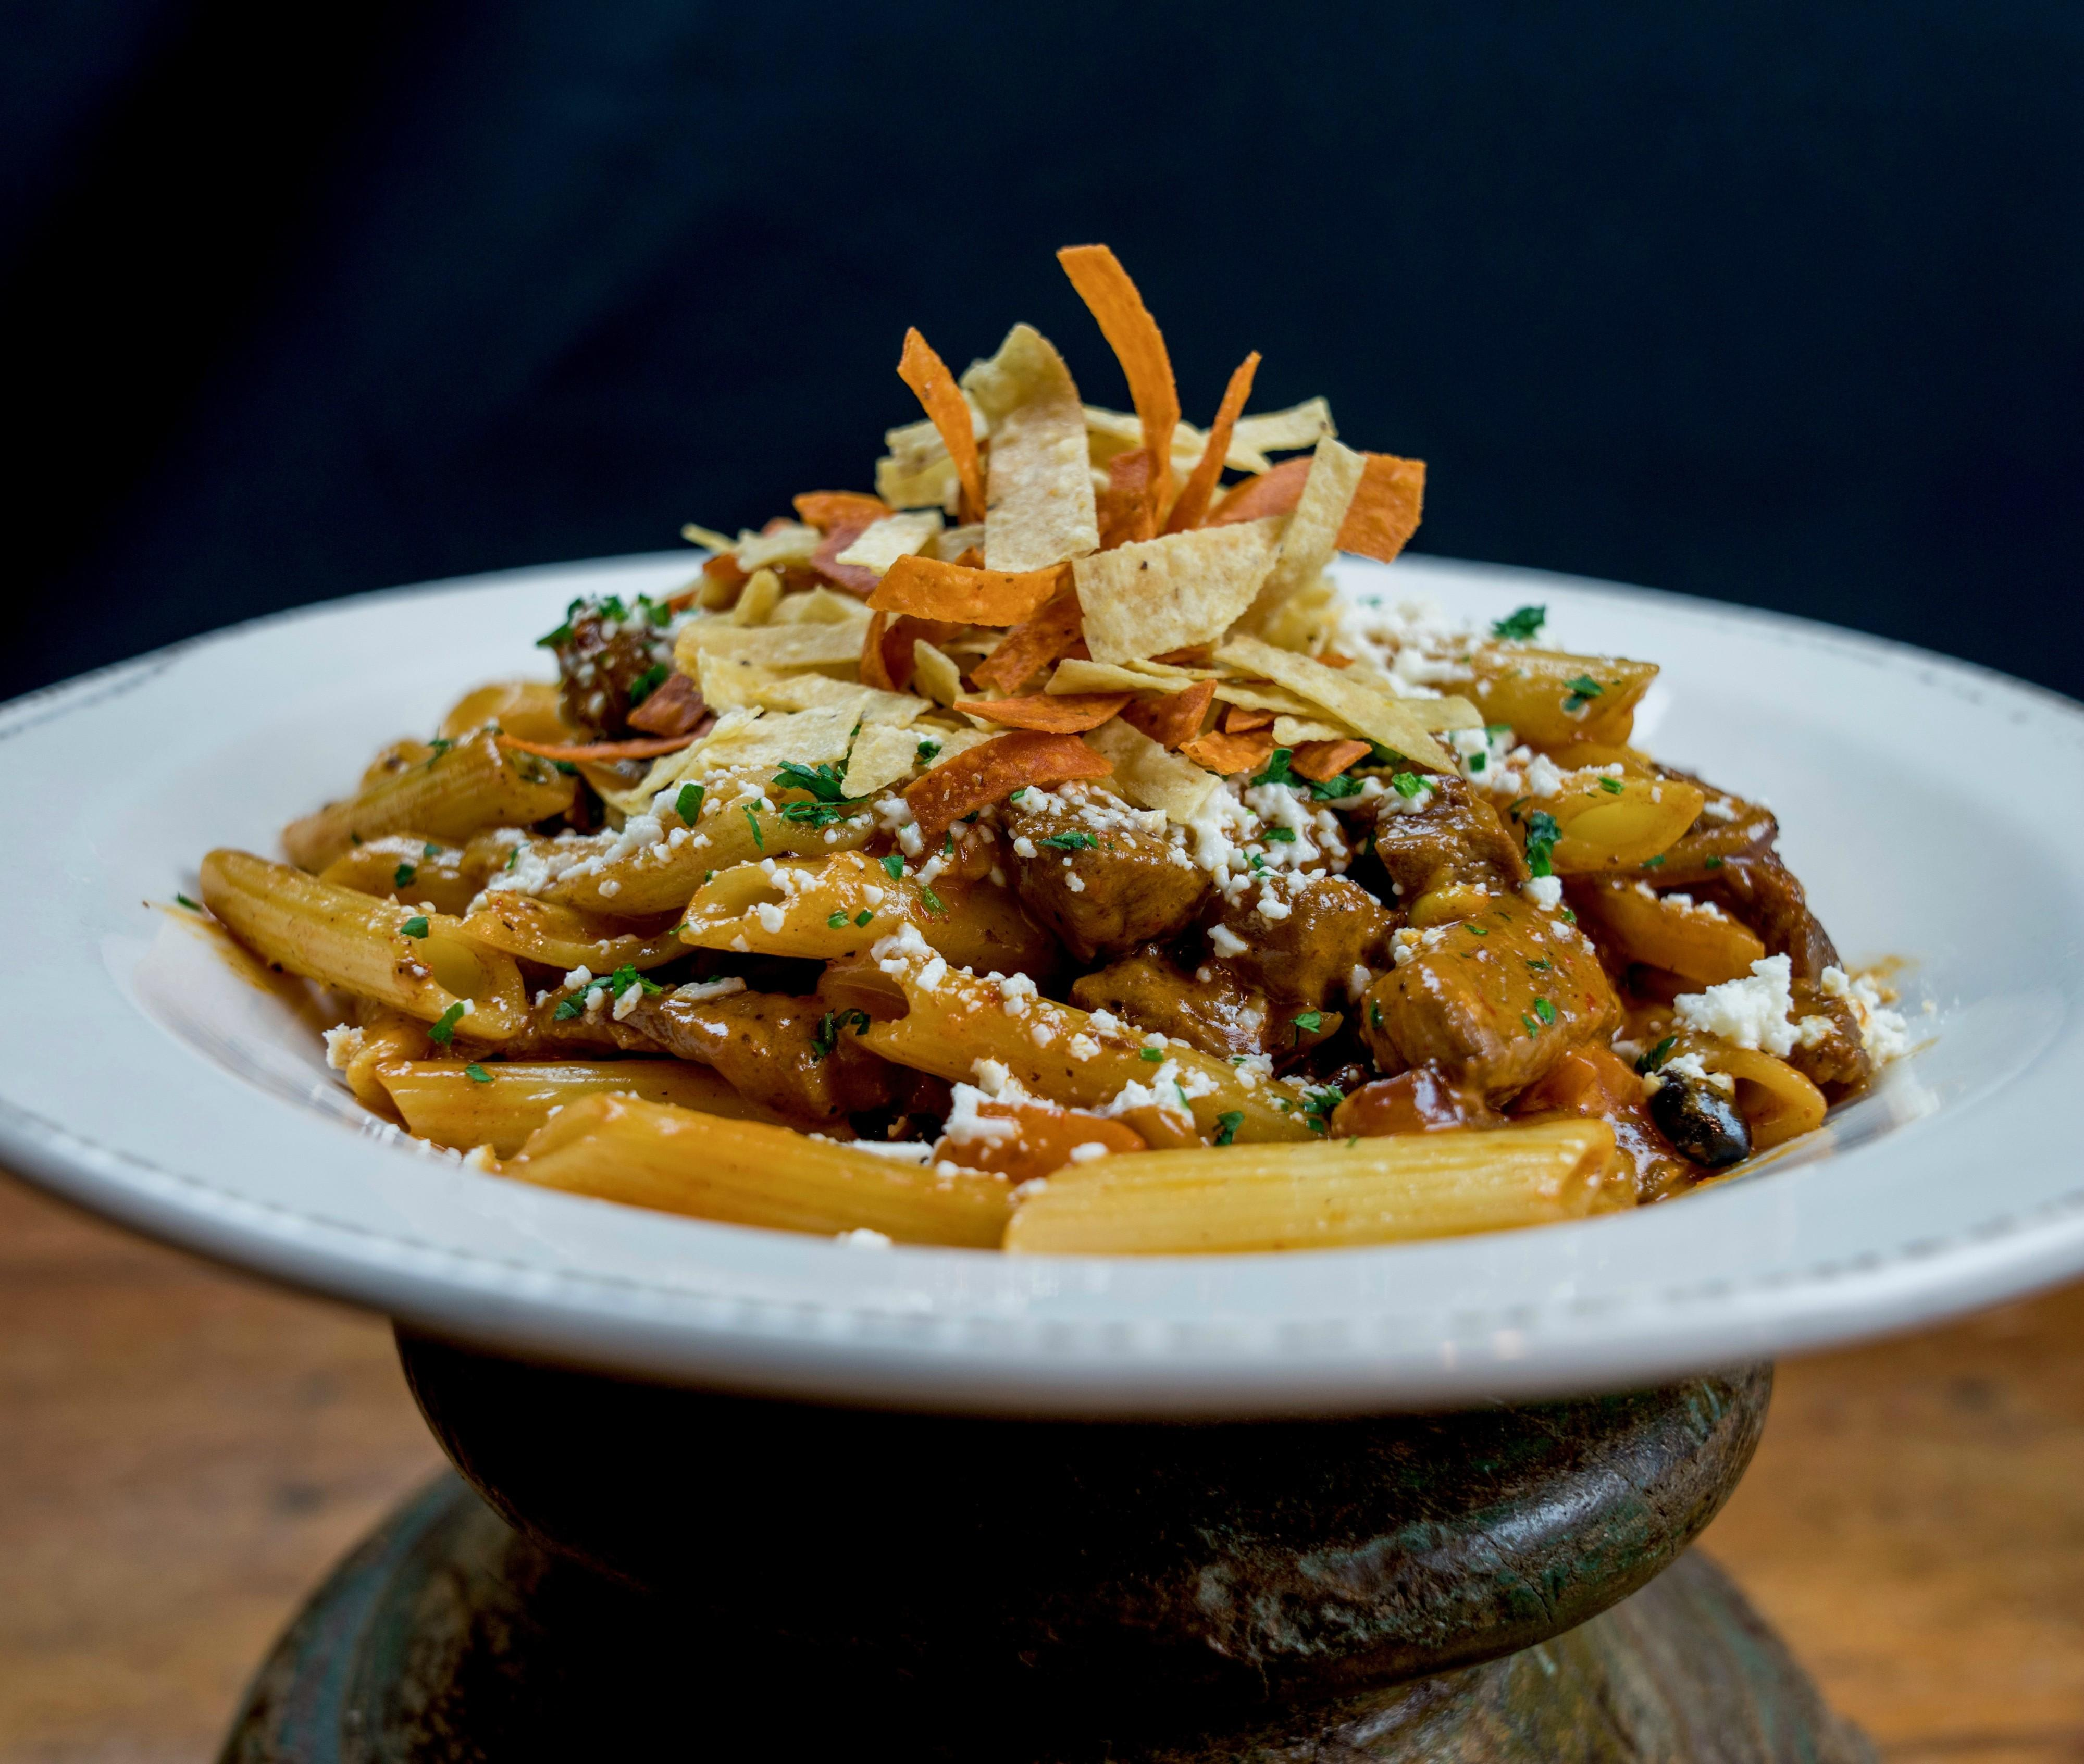 Penne Pasta Beef tenderloin tips, black beans, corn, tomatoes, red onions, mild red chili sauce & feta cheese at Tonto Bar & Grill